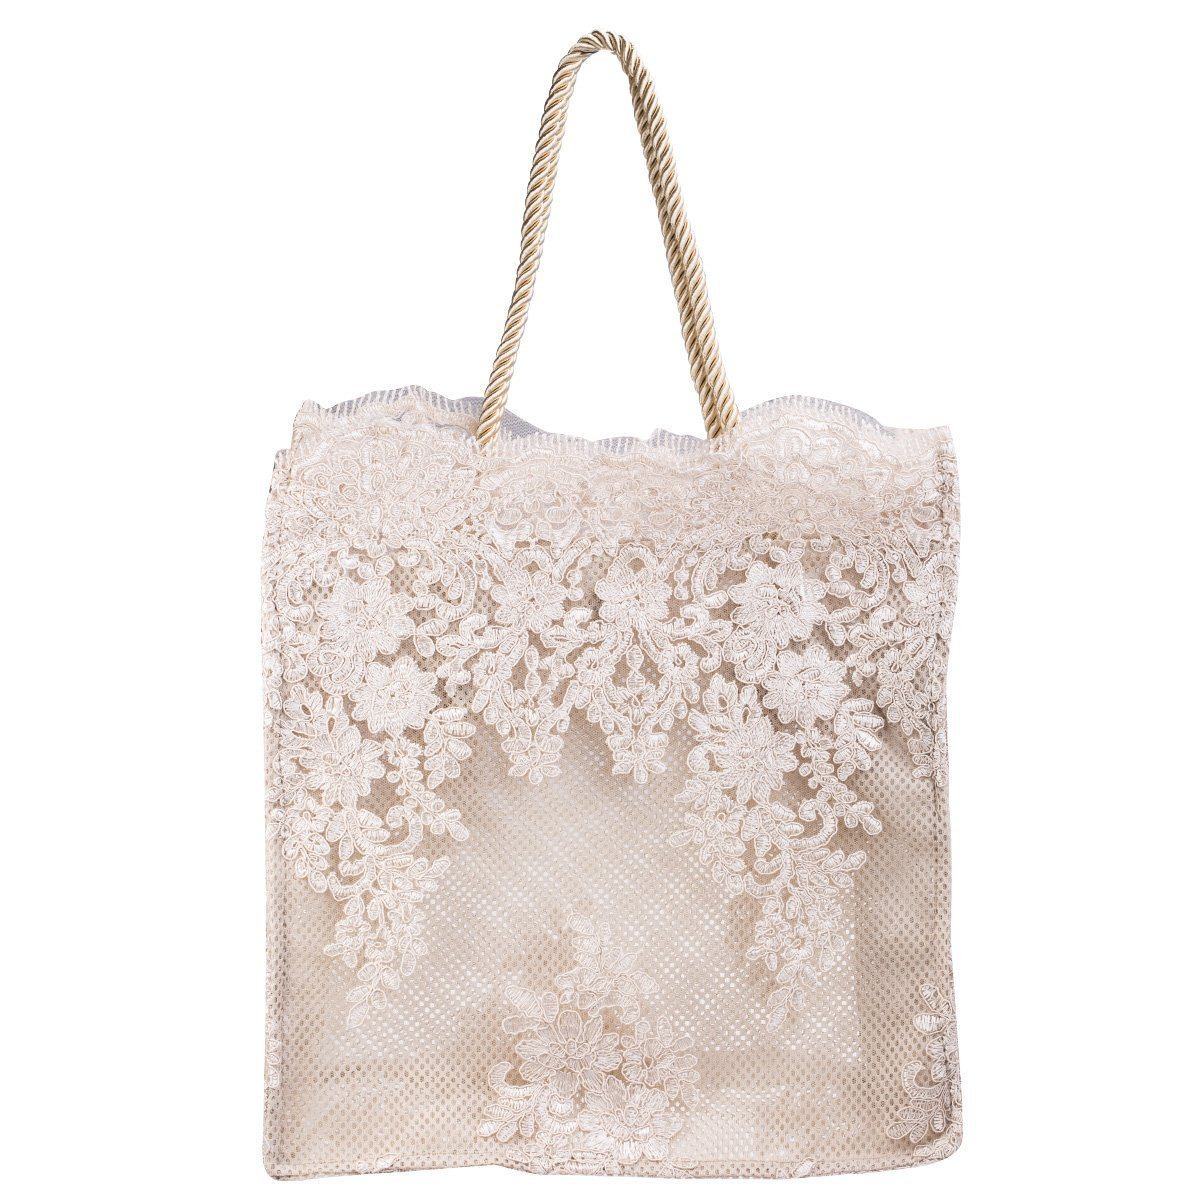 Handbag - Champagne Embroidery Shoulder Bags for Women ManChDa Elegant Lace Lady bags Lightweight - Big Size